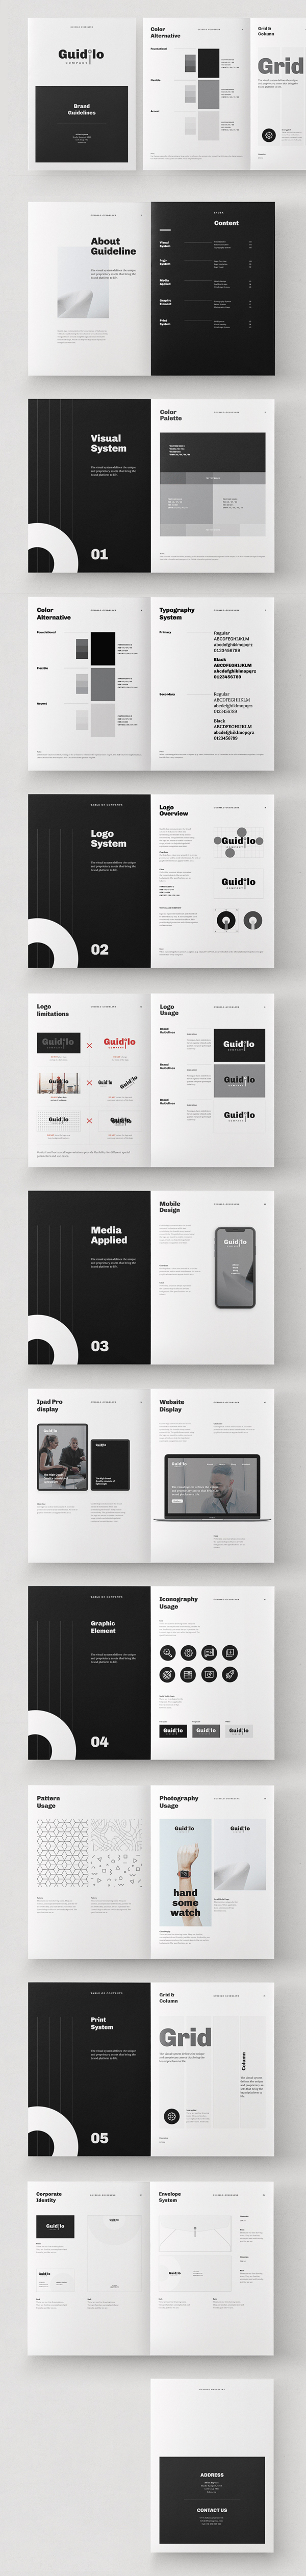 Brand Guideline Brochure InDesign Template